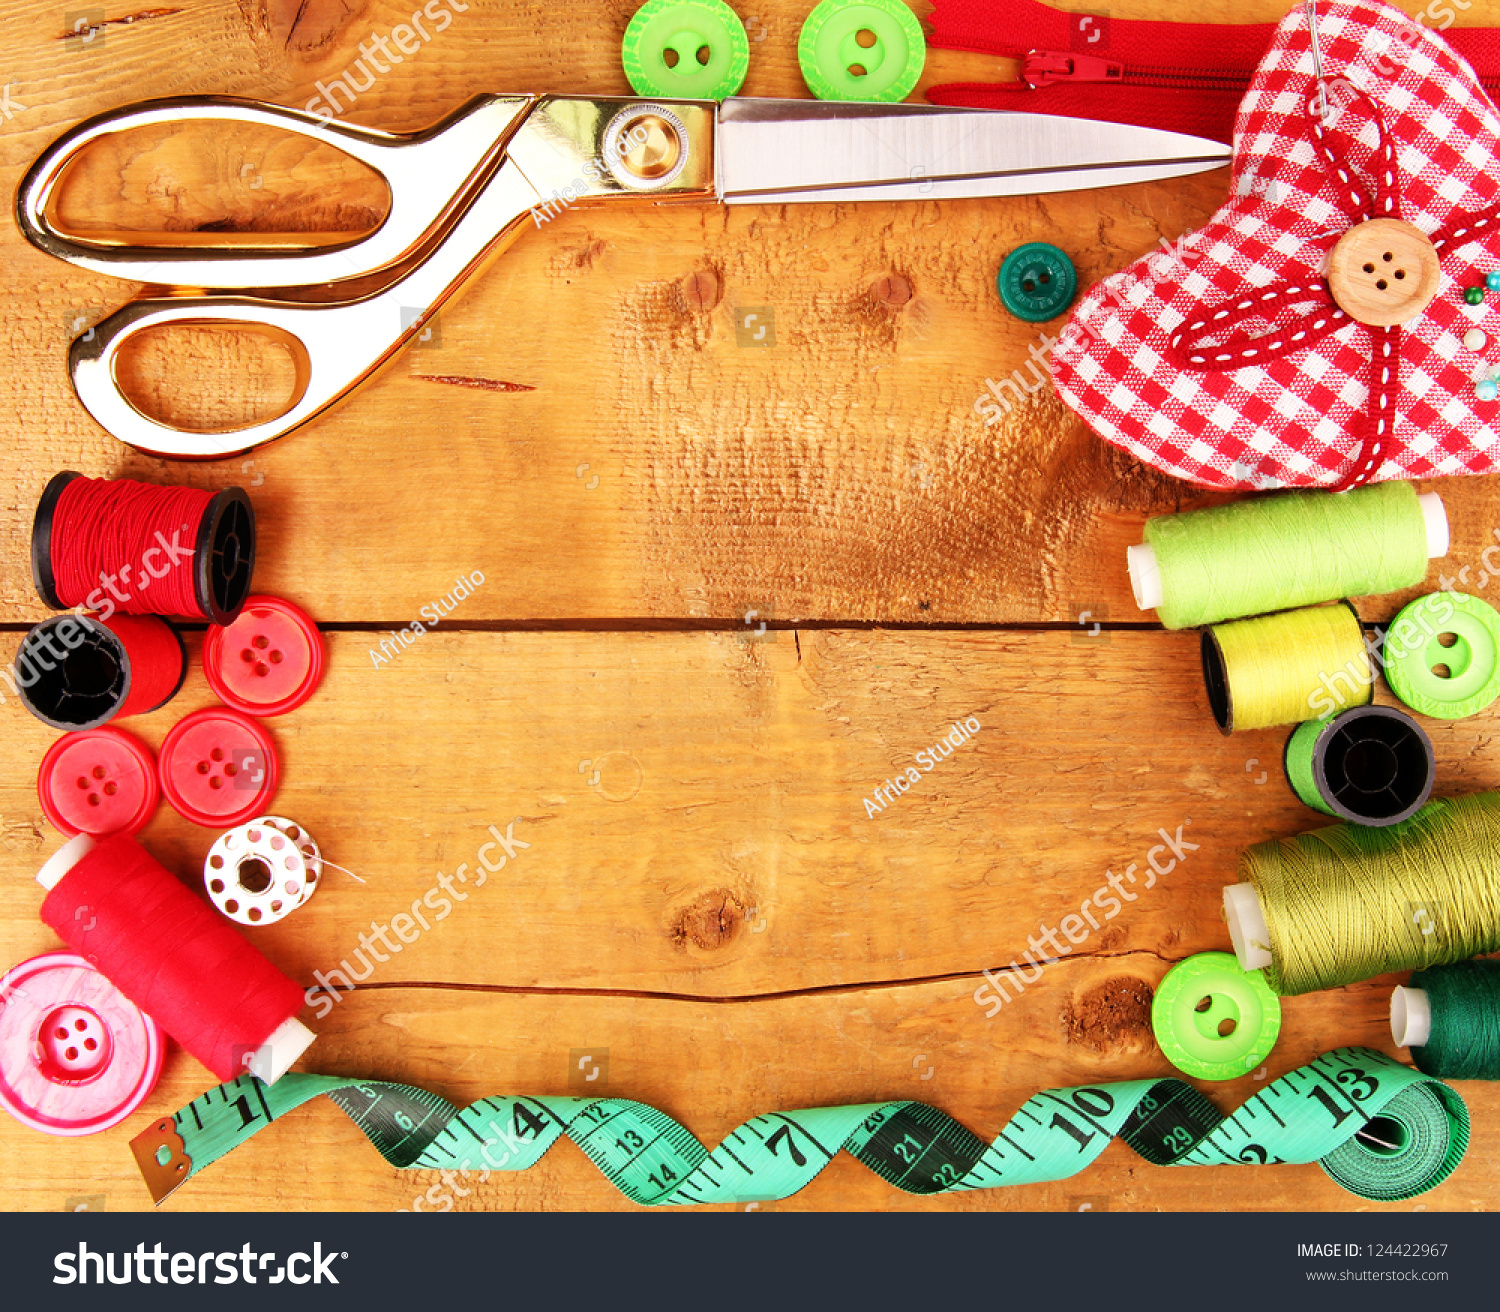 Sewing accessories and fabric on wooden table close up